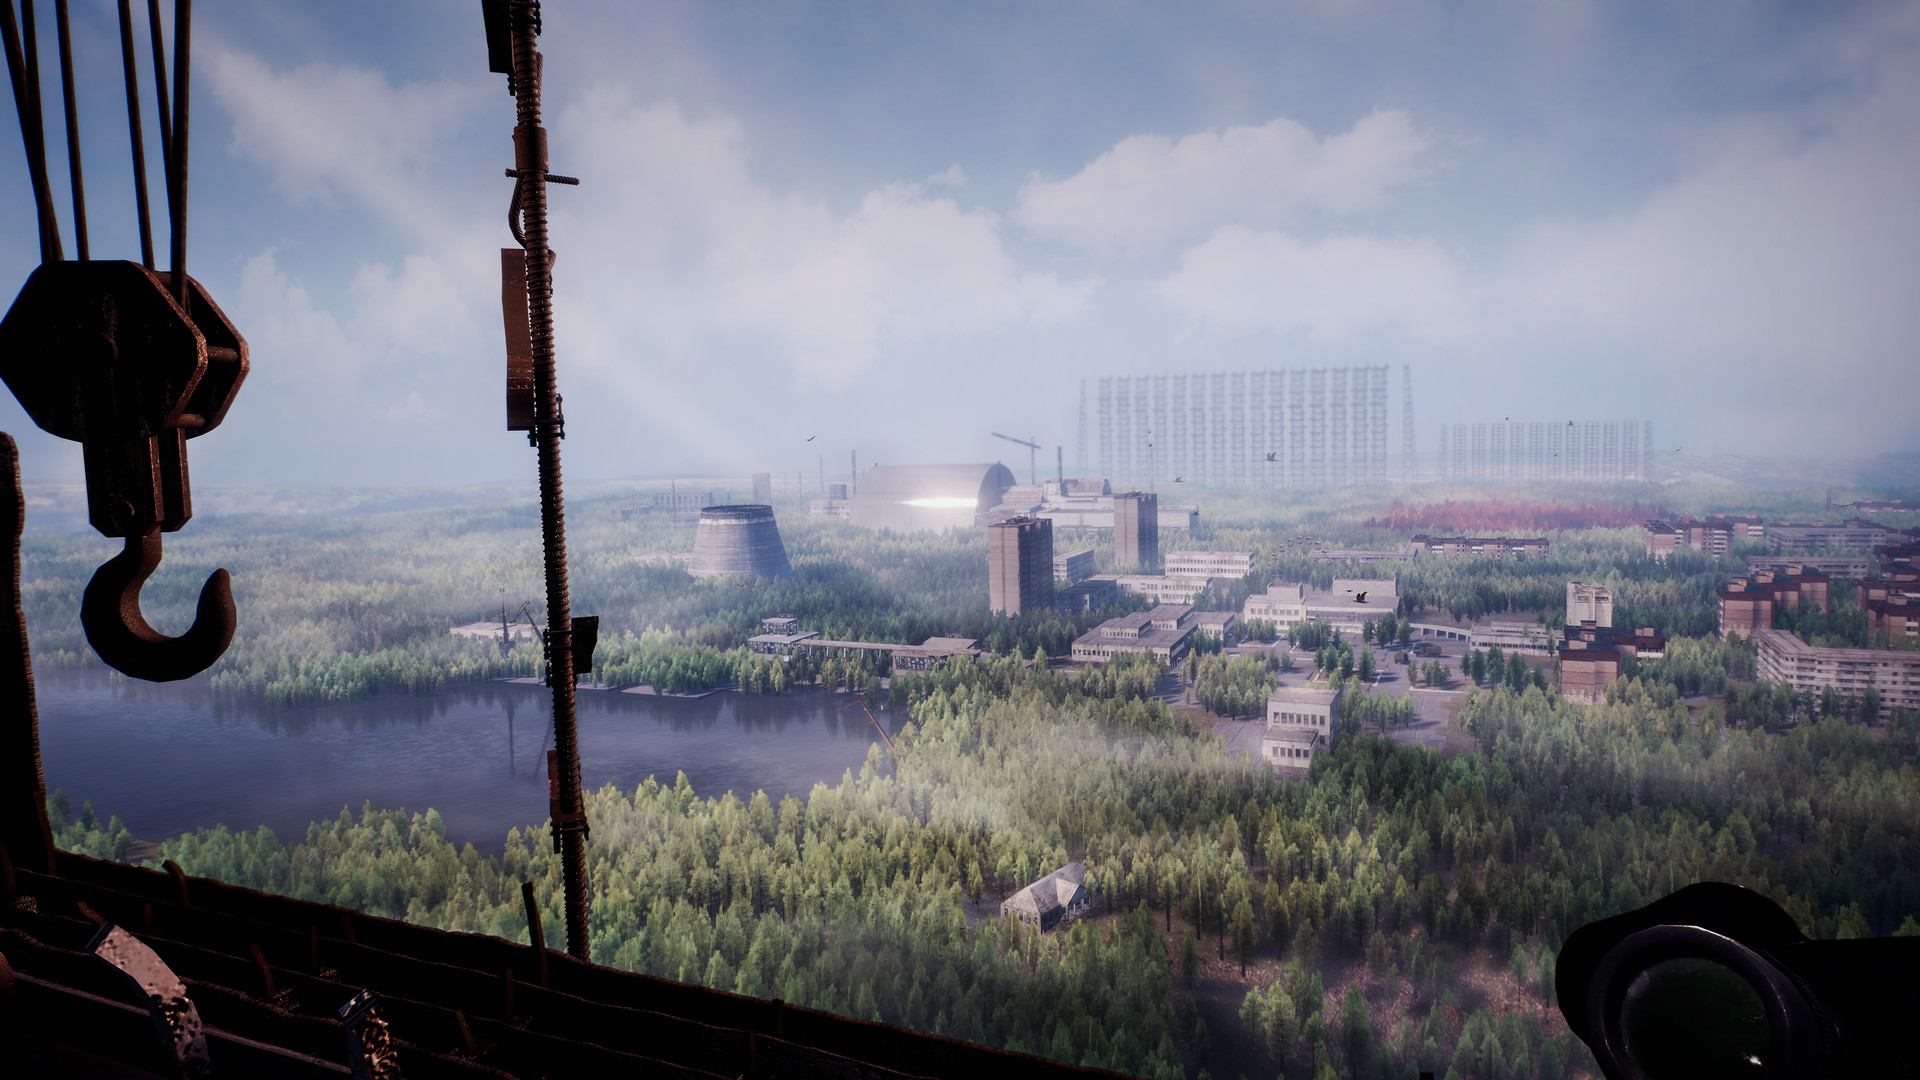 Steam bestseller is a recreation of Chernobyl's disaster zone